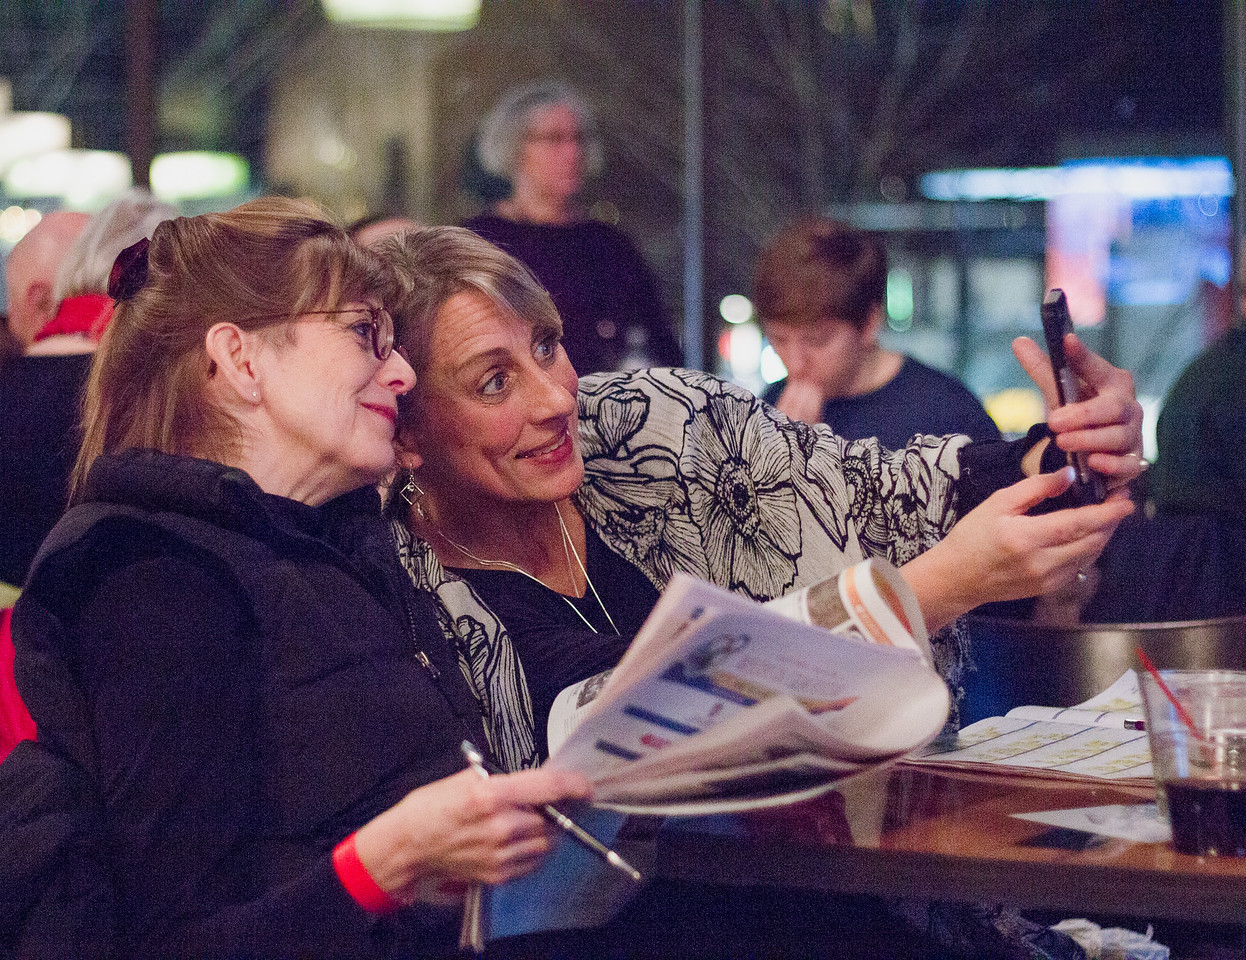 Patron Jane Schroeder (right) and friend take selfies during the 2018 First Look at the Fest.